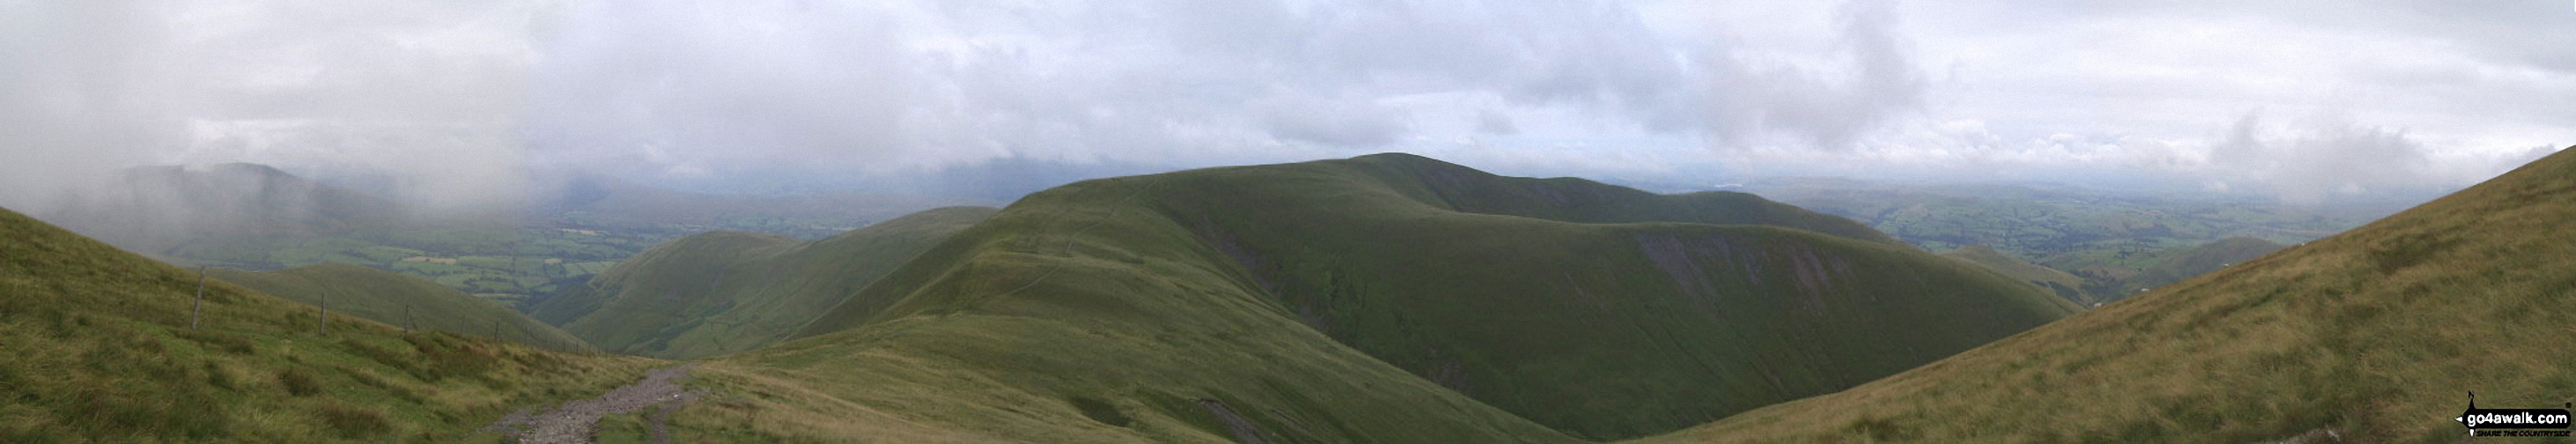 Arant Haw from (just below) Calders summit